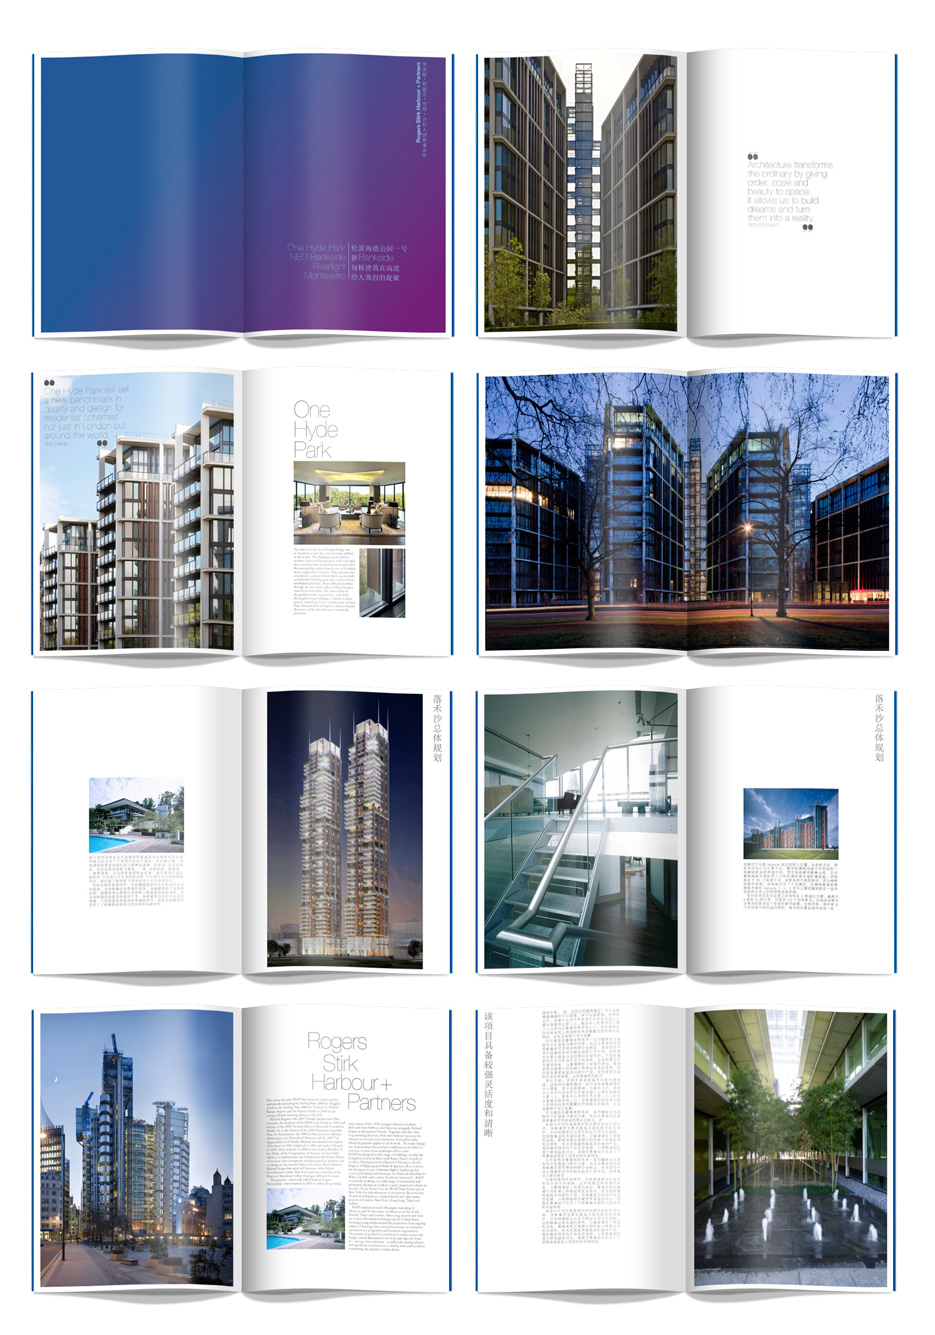 RSHP far east architecture brochure spreads